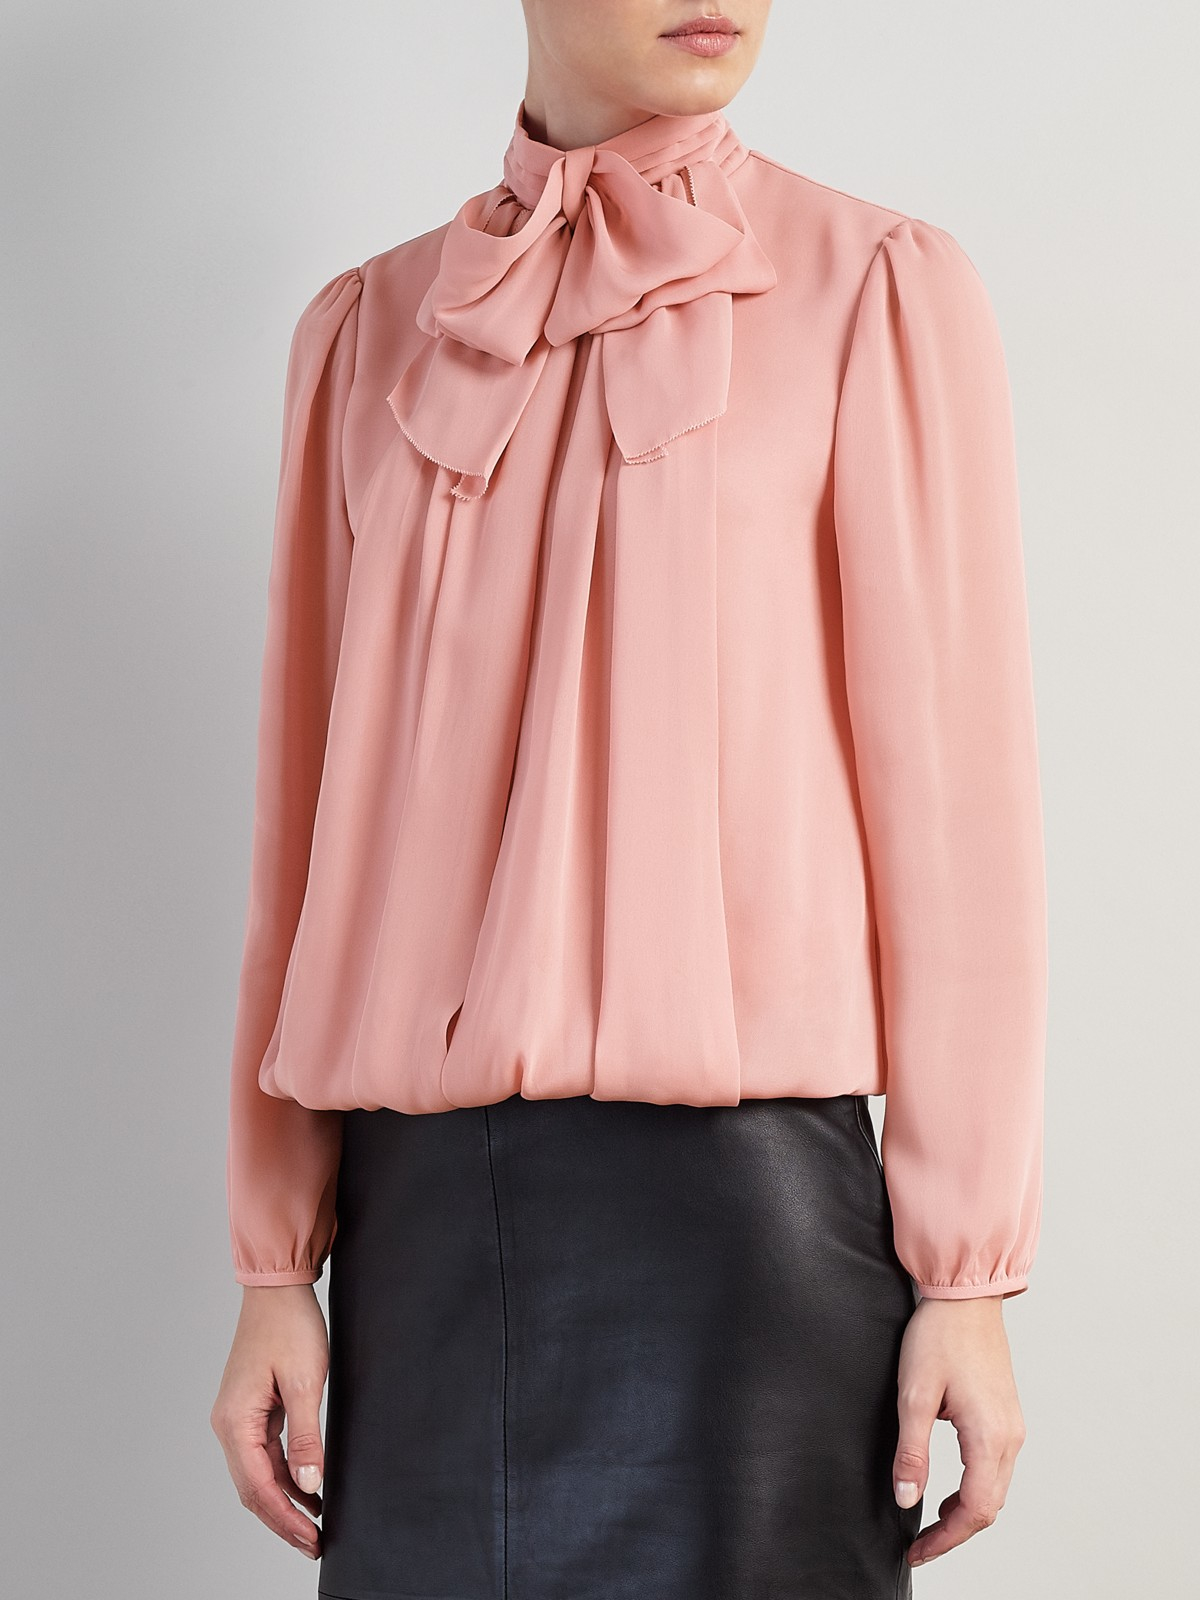 Somerset by Alice Temperley Bow Blouse